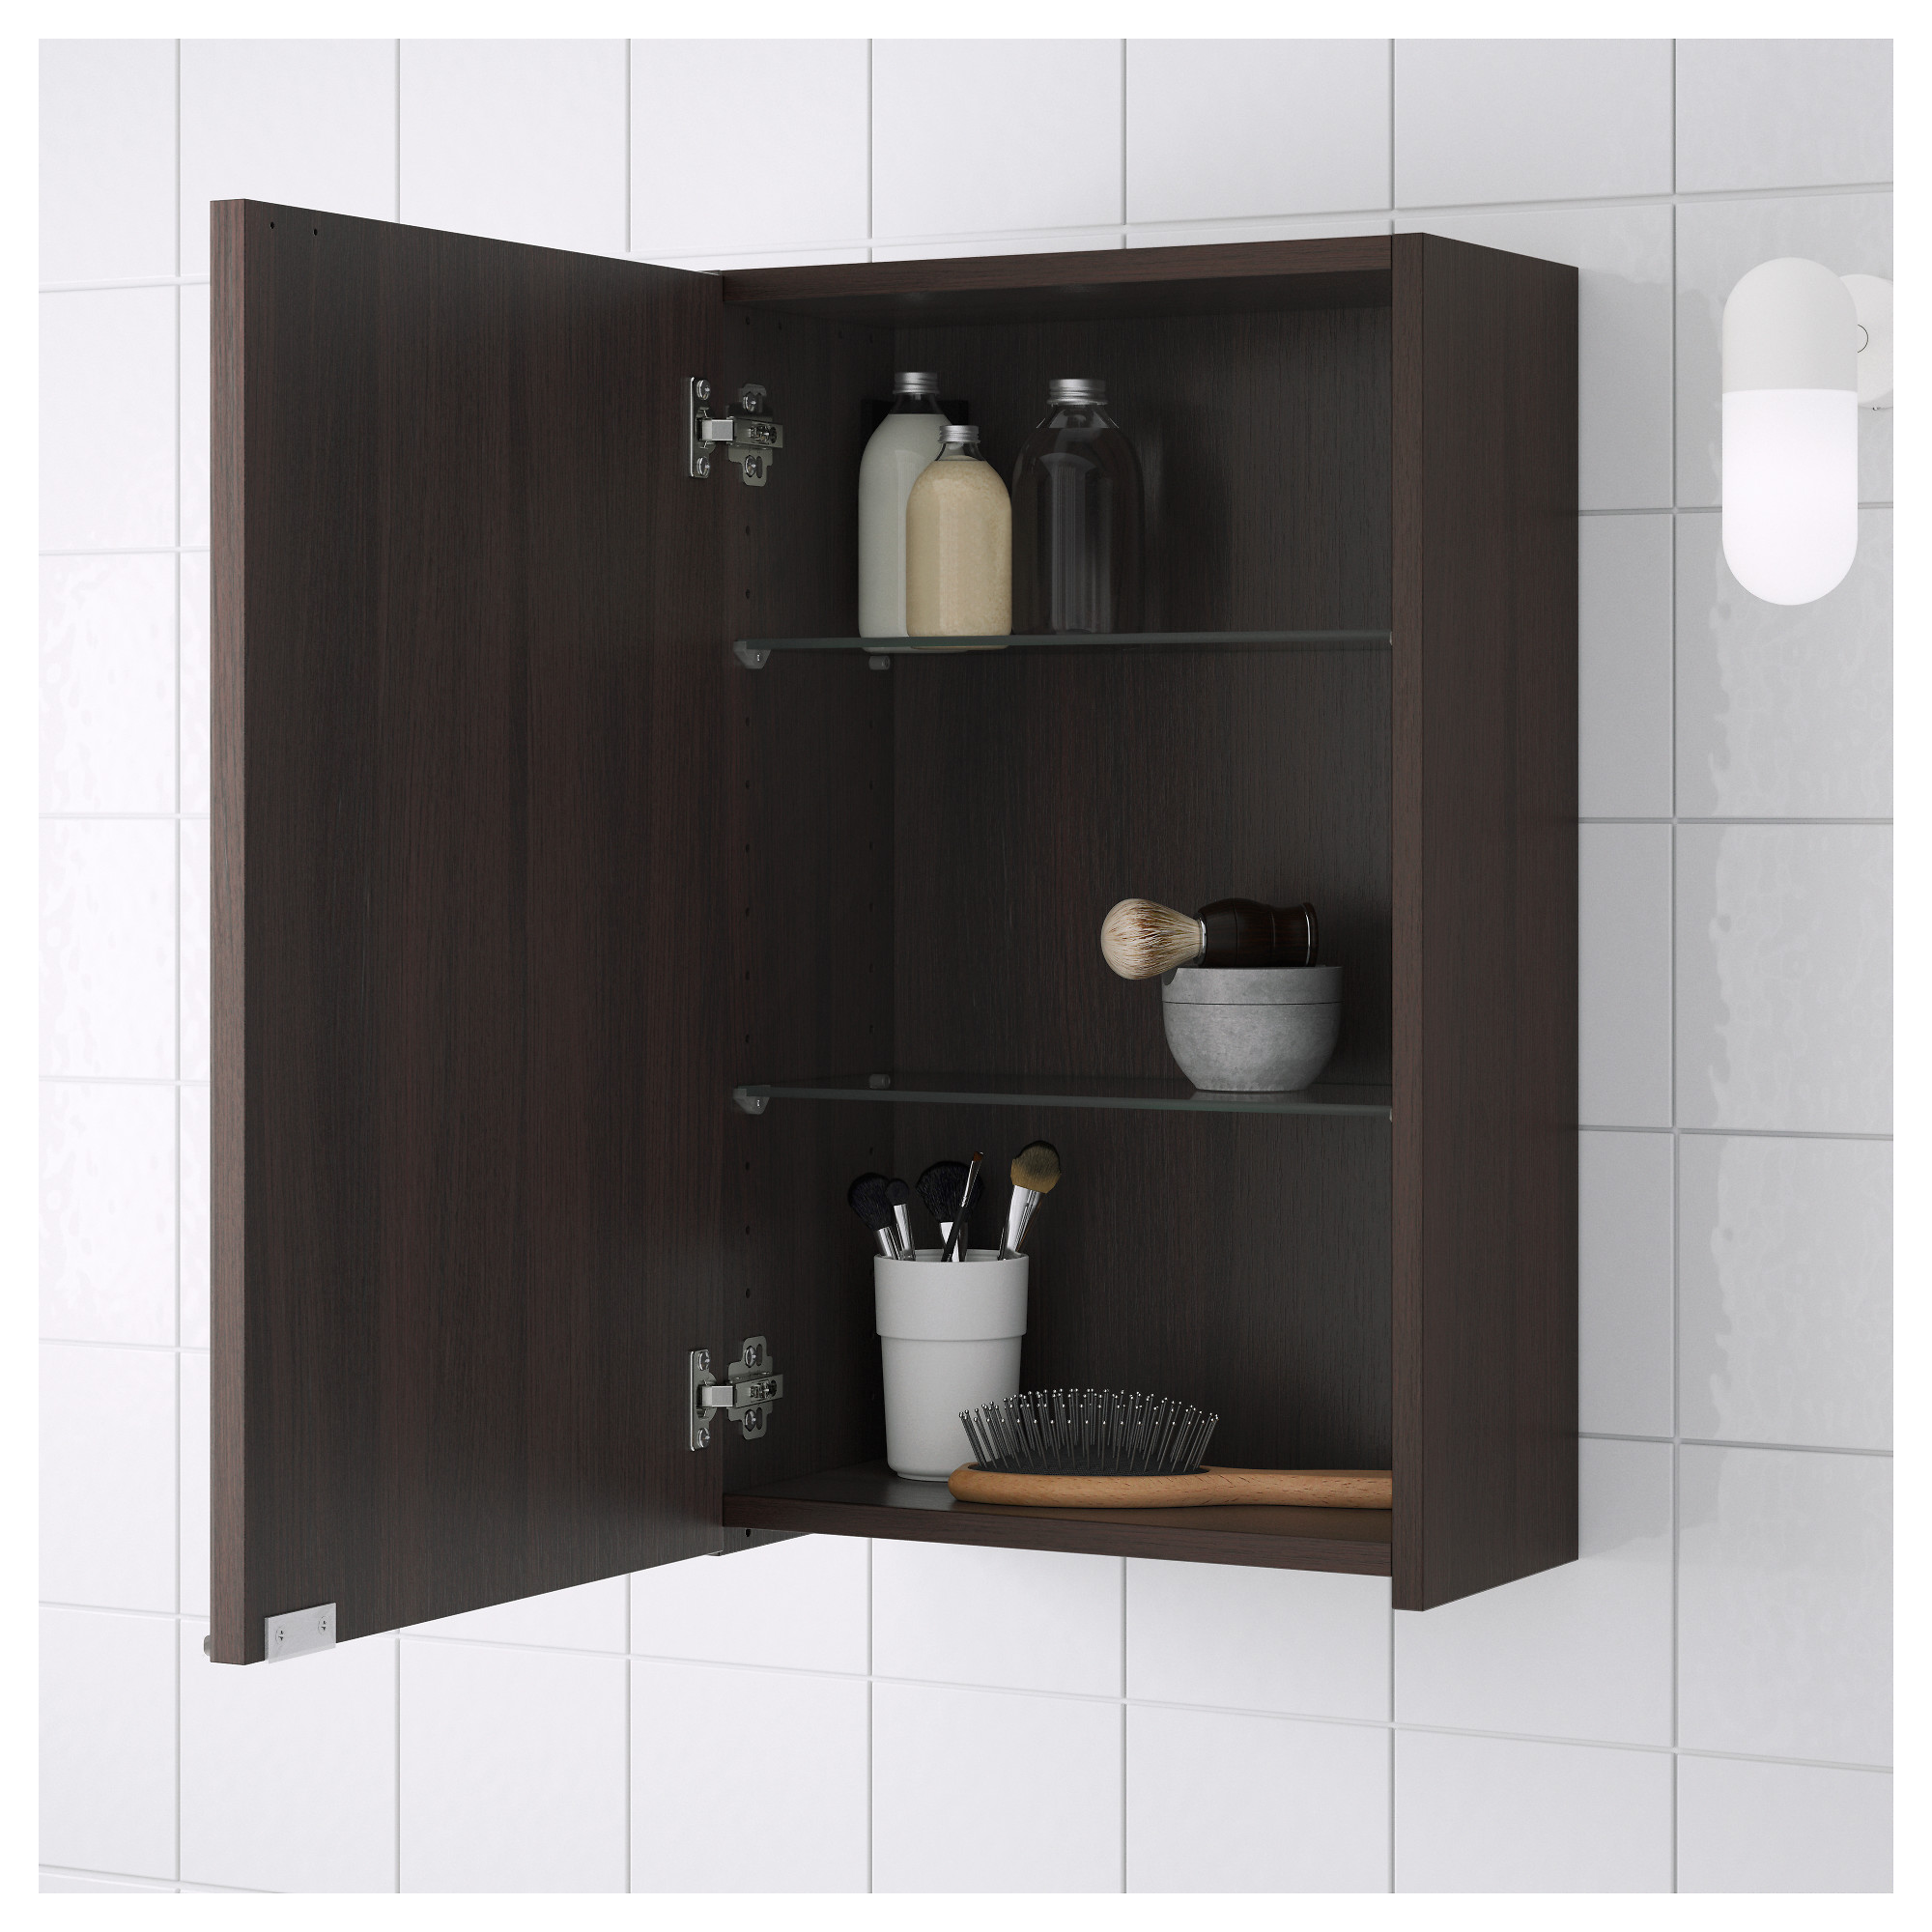 Black Wall Cabinet lillÅngen wall cabinet - black-brown - ikea